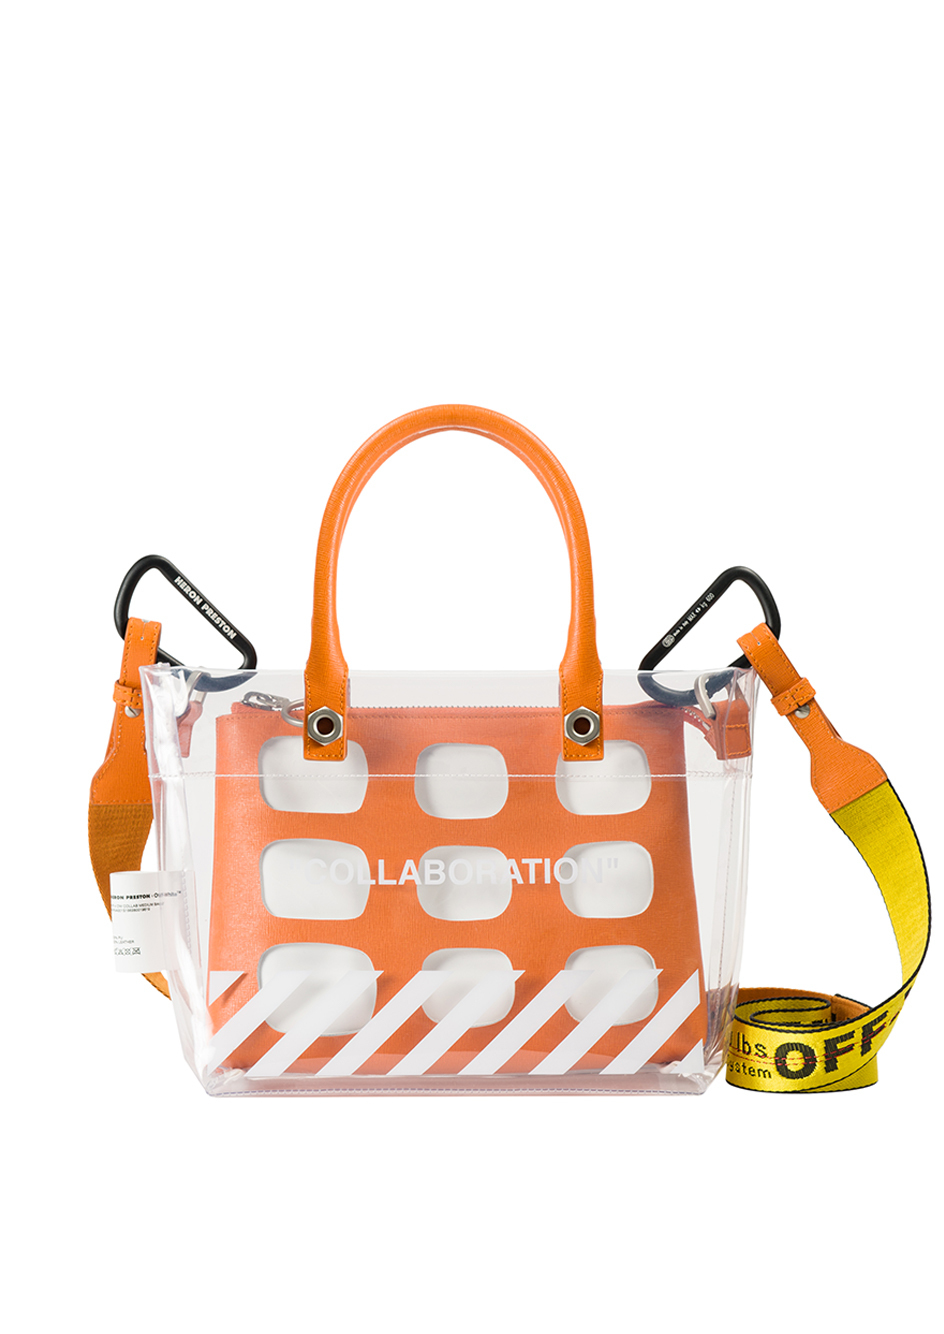 Kolor Magazine Off-White and Heron Preston Have Collaborated on A Unisex Handbag 2.jpg